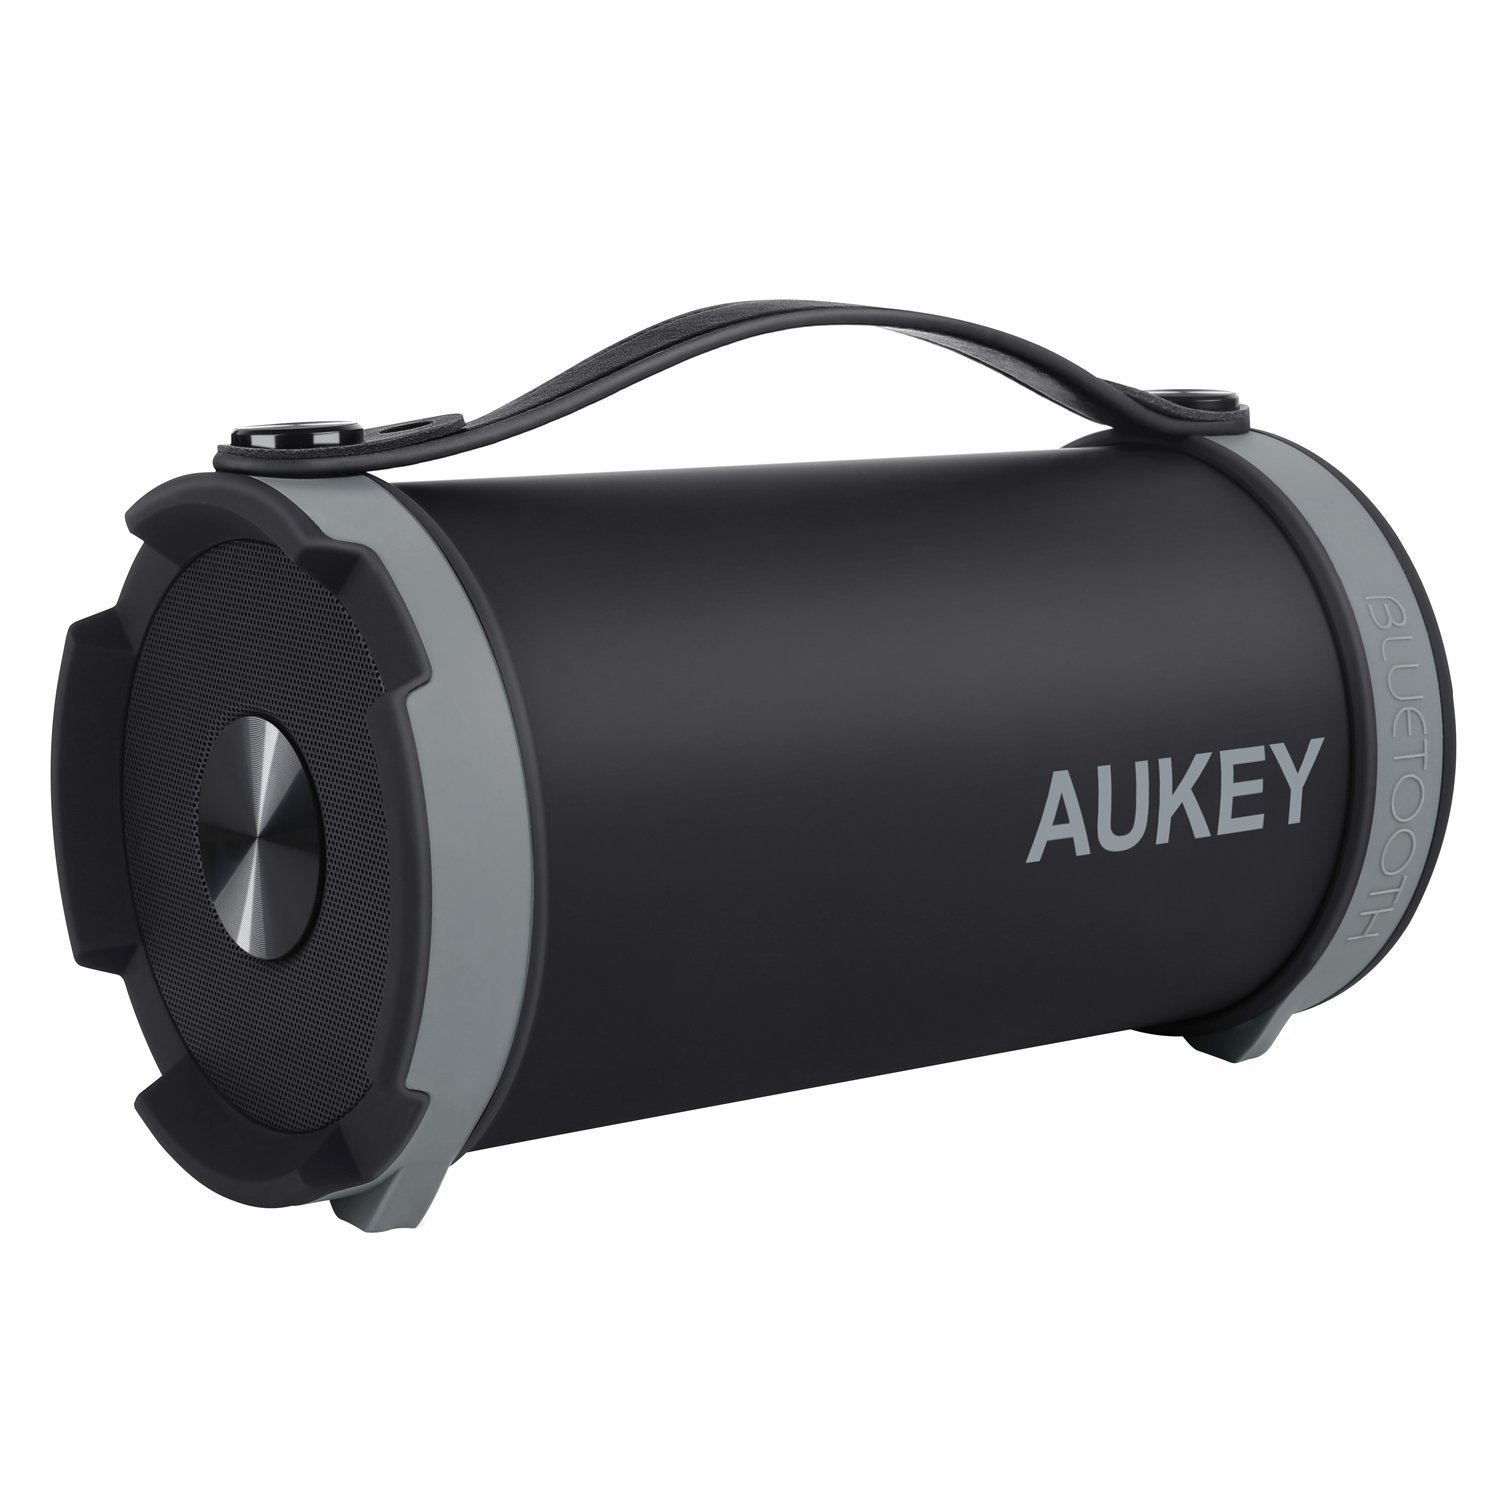 Aukey Bluetooth Lautsprecher SK-M18 Test kabelloser Speaker